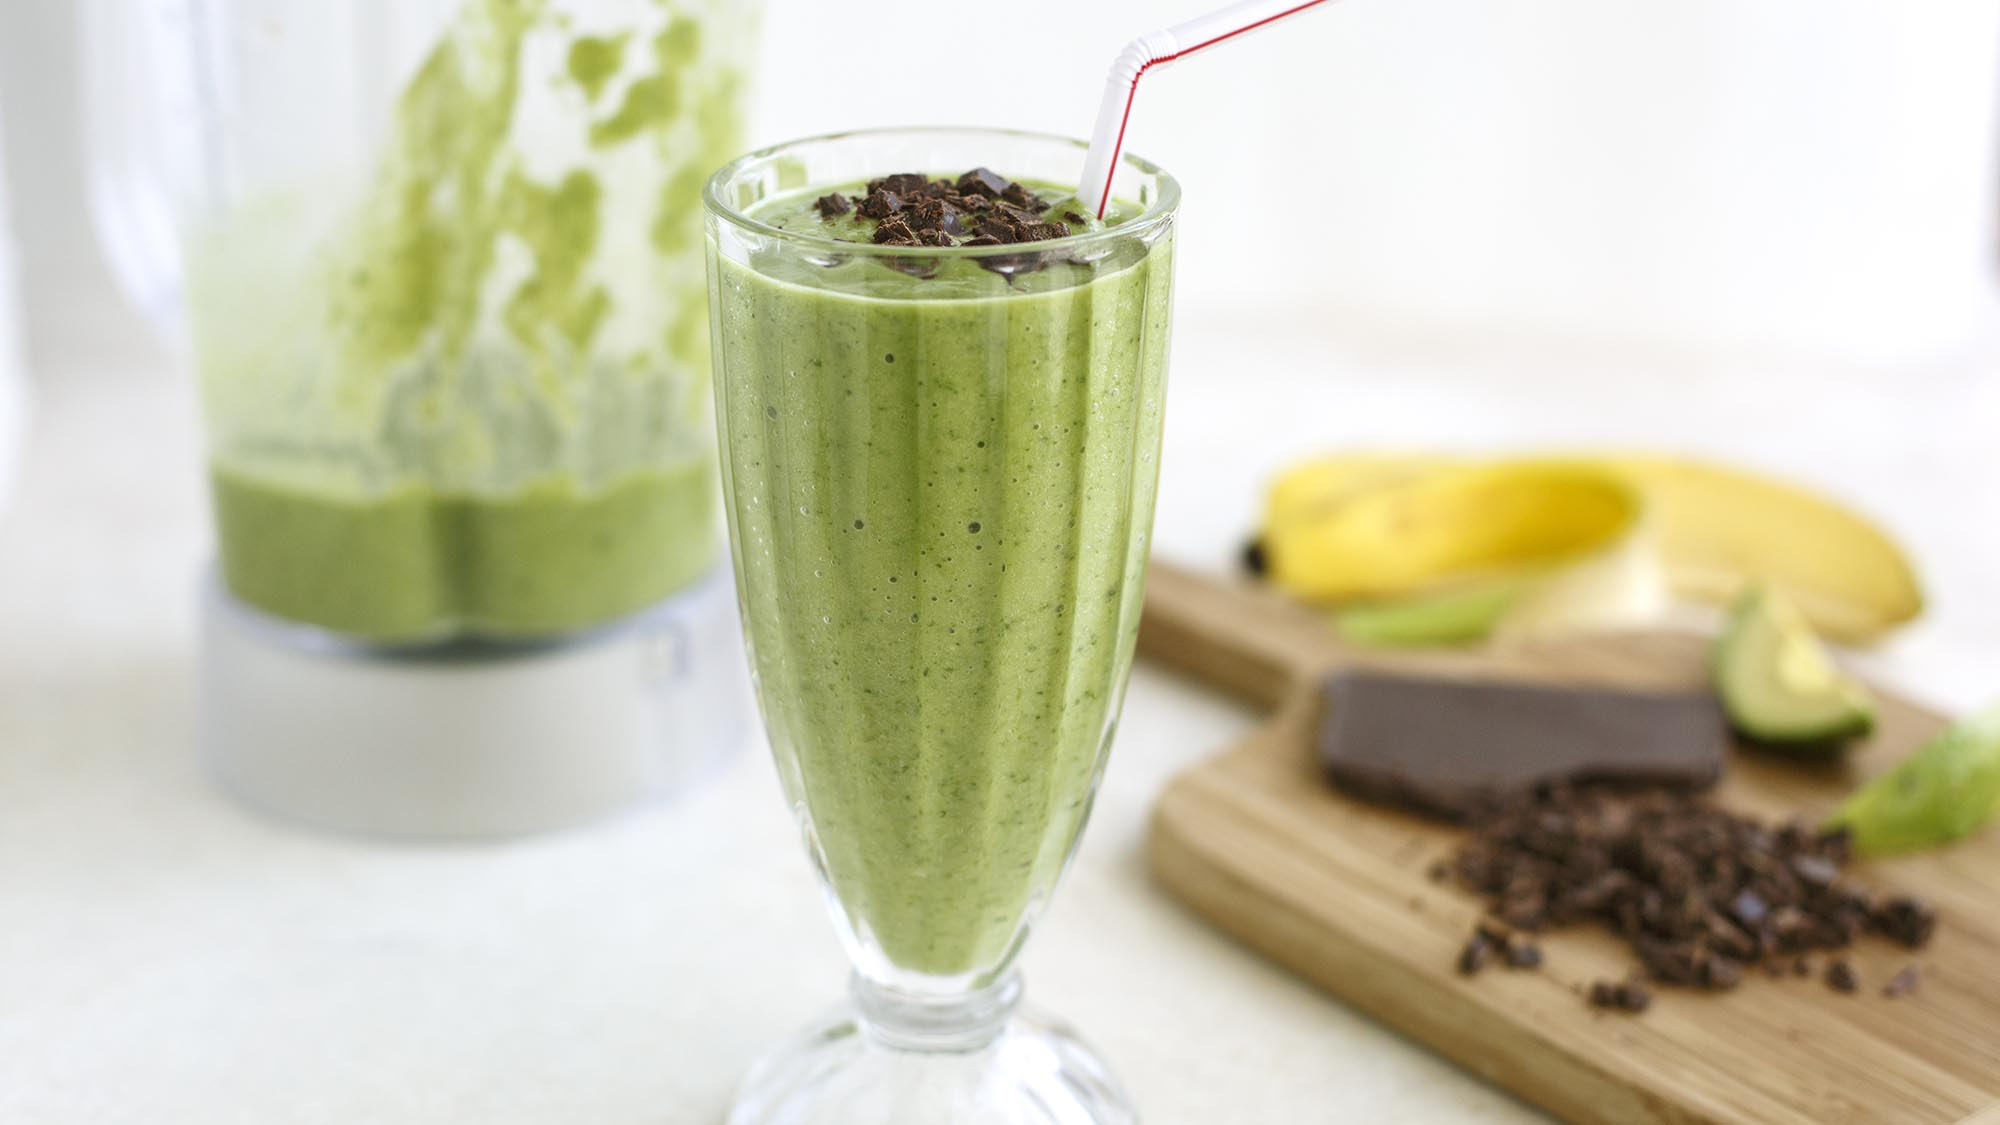 McCormick Mint Chocolate Breakfast Smoothie